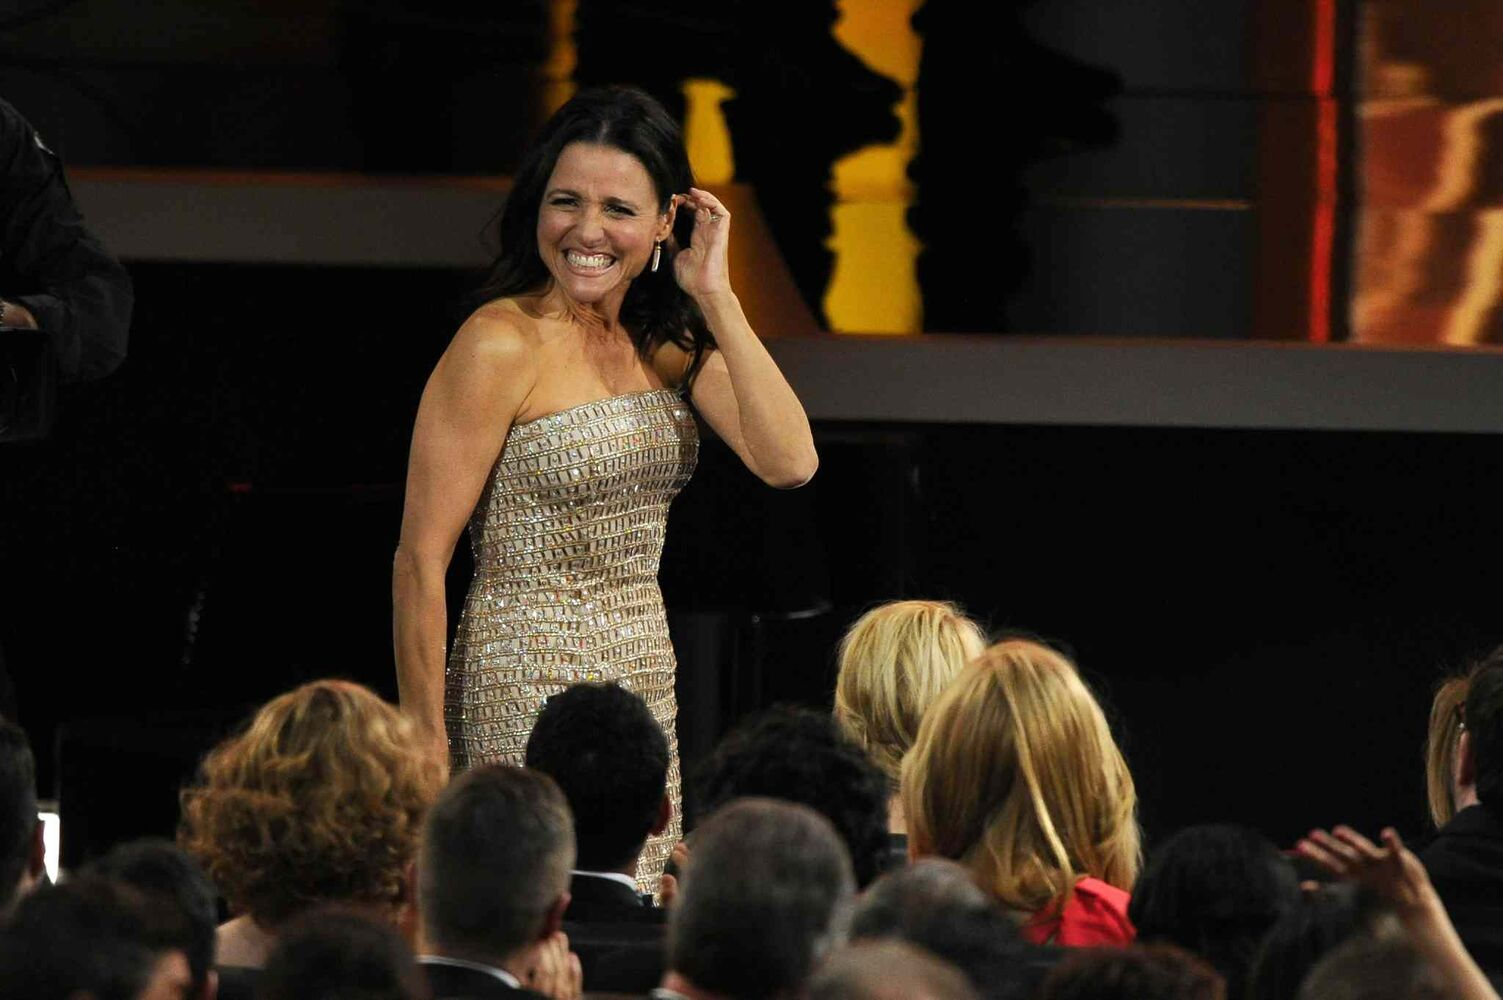 Julia Louis-Dreyfus reacts as it was announced that she won the award for outstanding lead actress in a comedy series for her role on Veep.